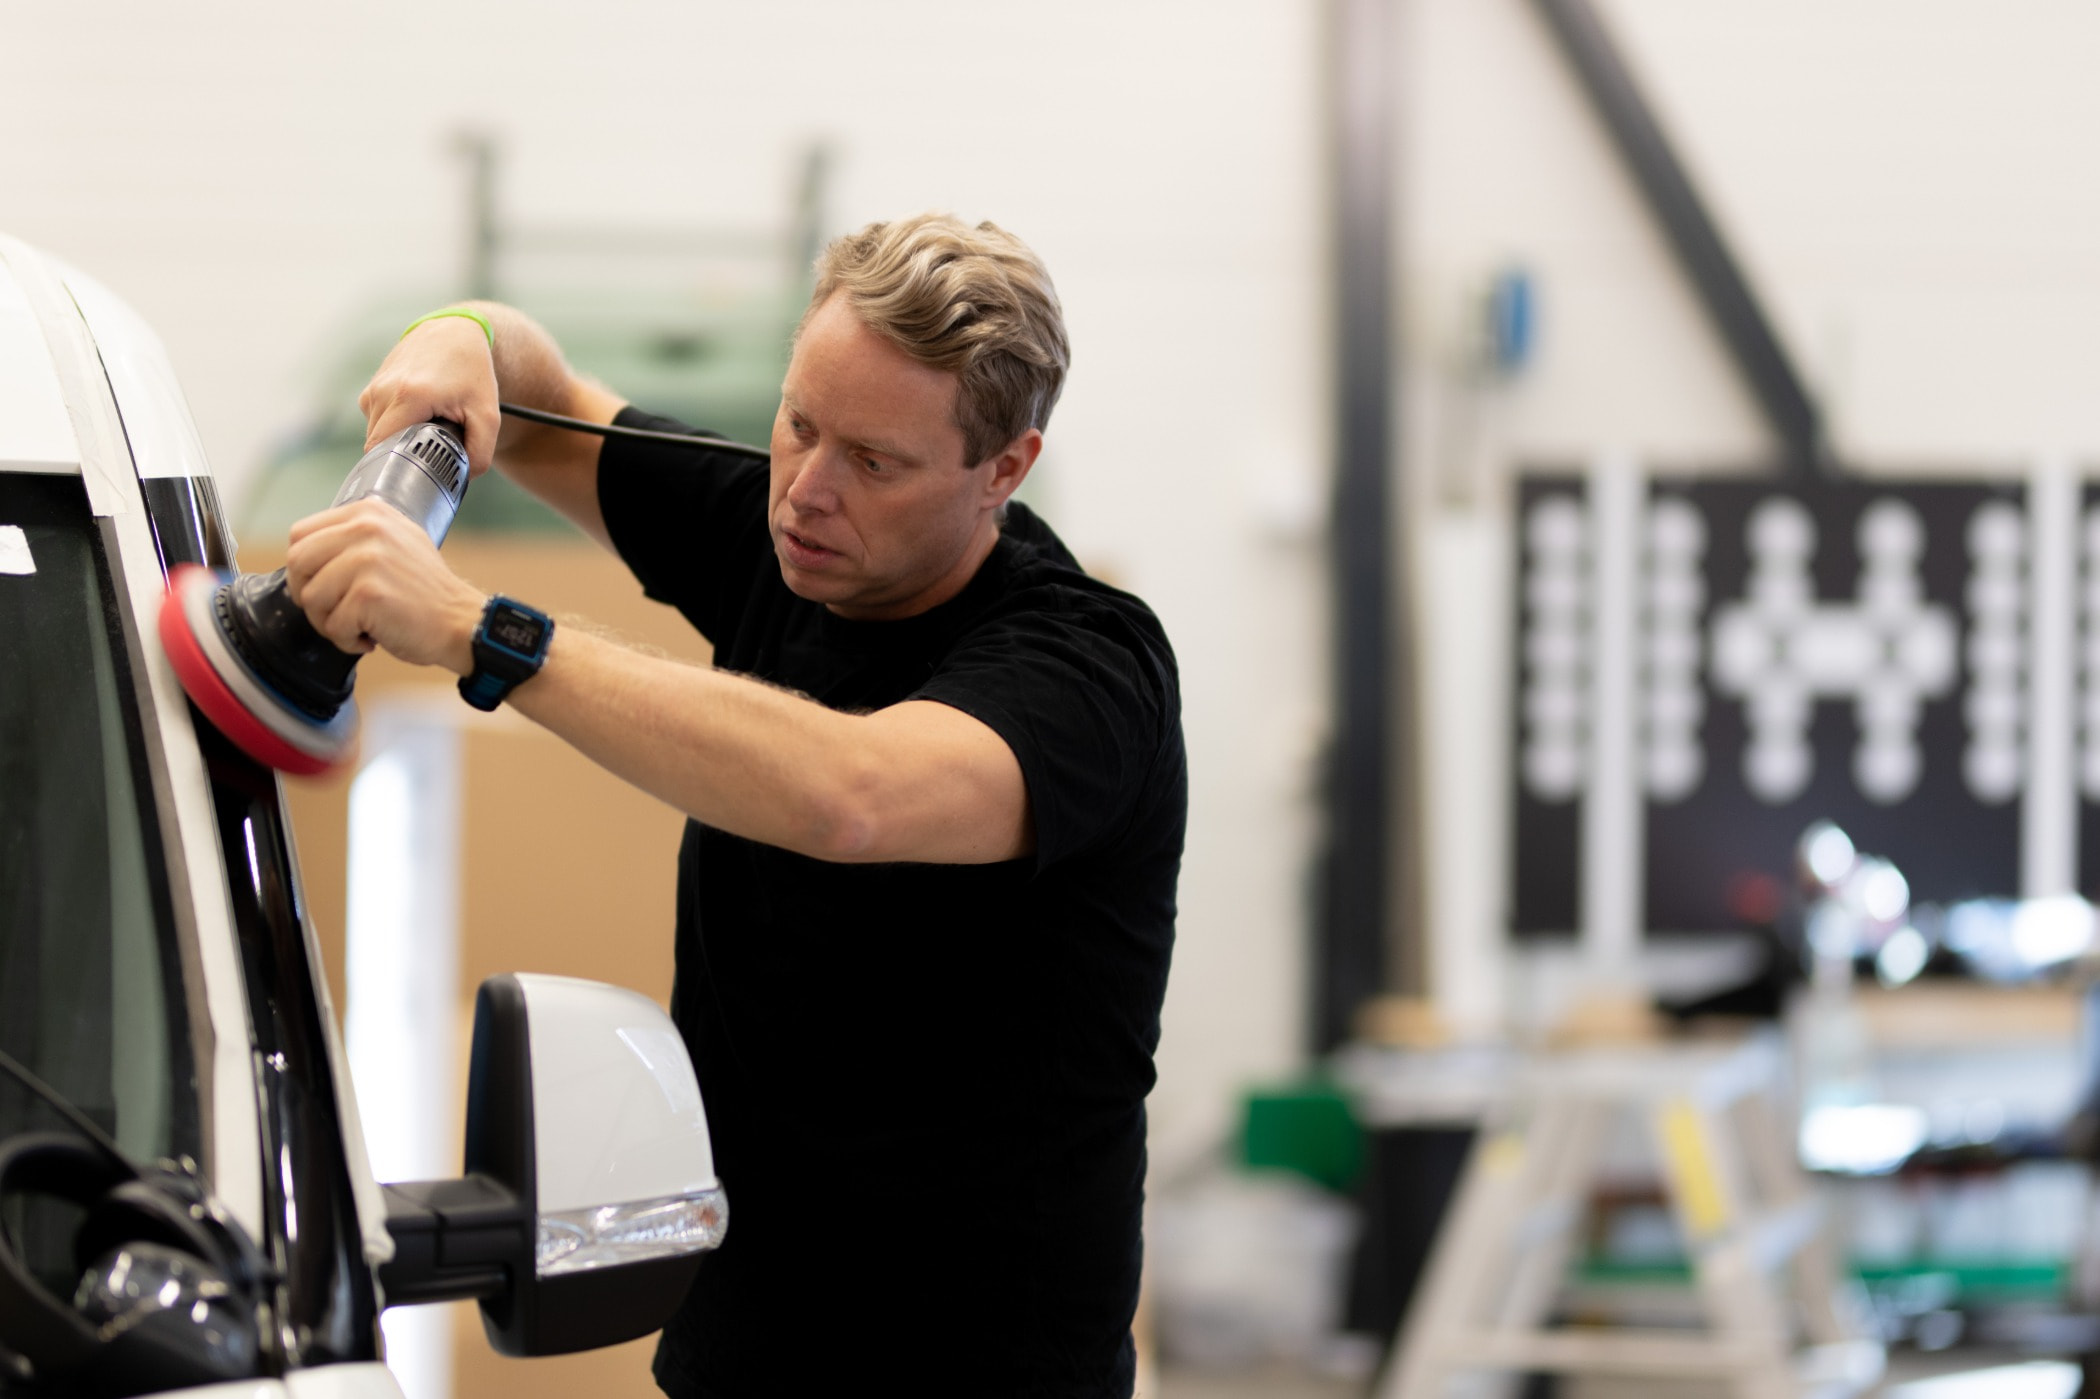 Weight training, Physical fitness, Joint, Arm, Gym, Shoulder